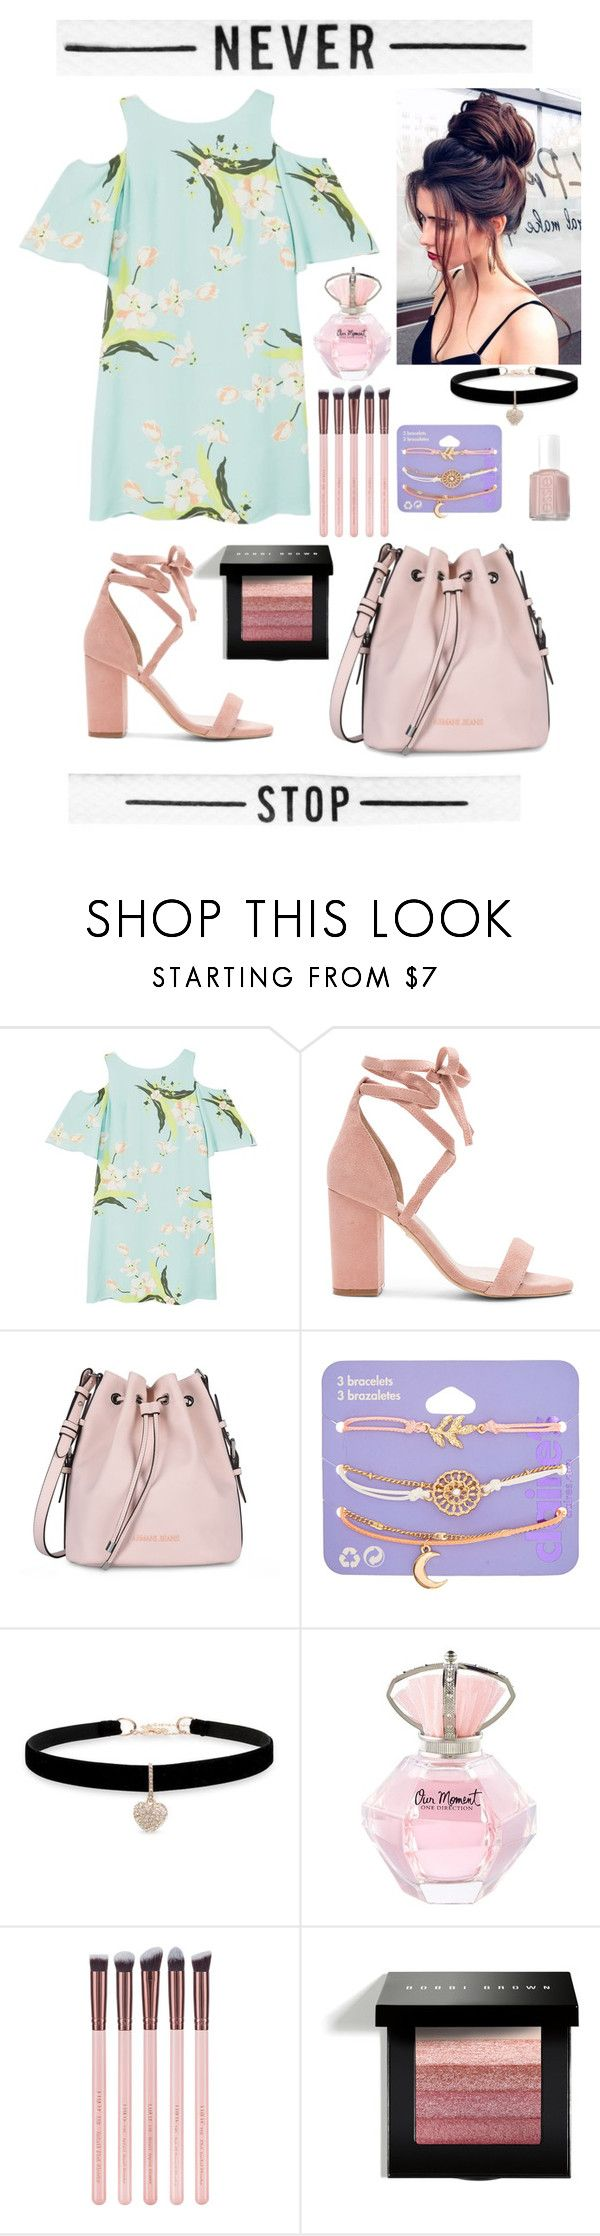 """Don't stop ▫️▪️"" by silviamachado20 on Polyvore featuring MANGO, Raye, Armani Jeans, claire's, Betsey Johnson, Bobbi Brown Cosmetics and Essie"